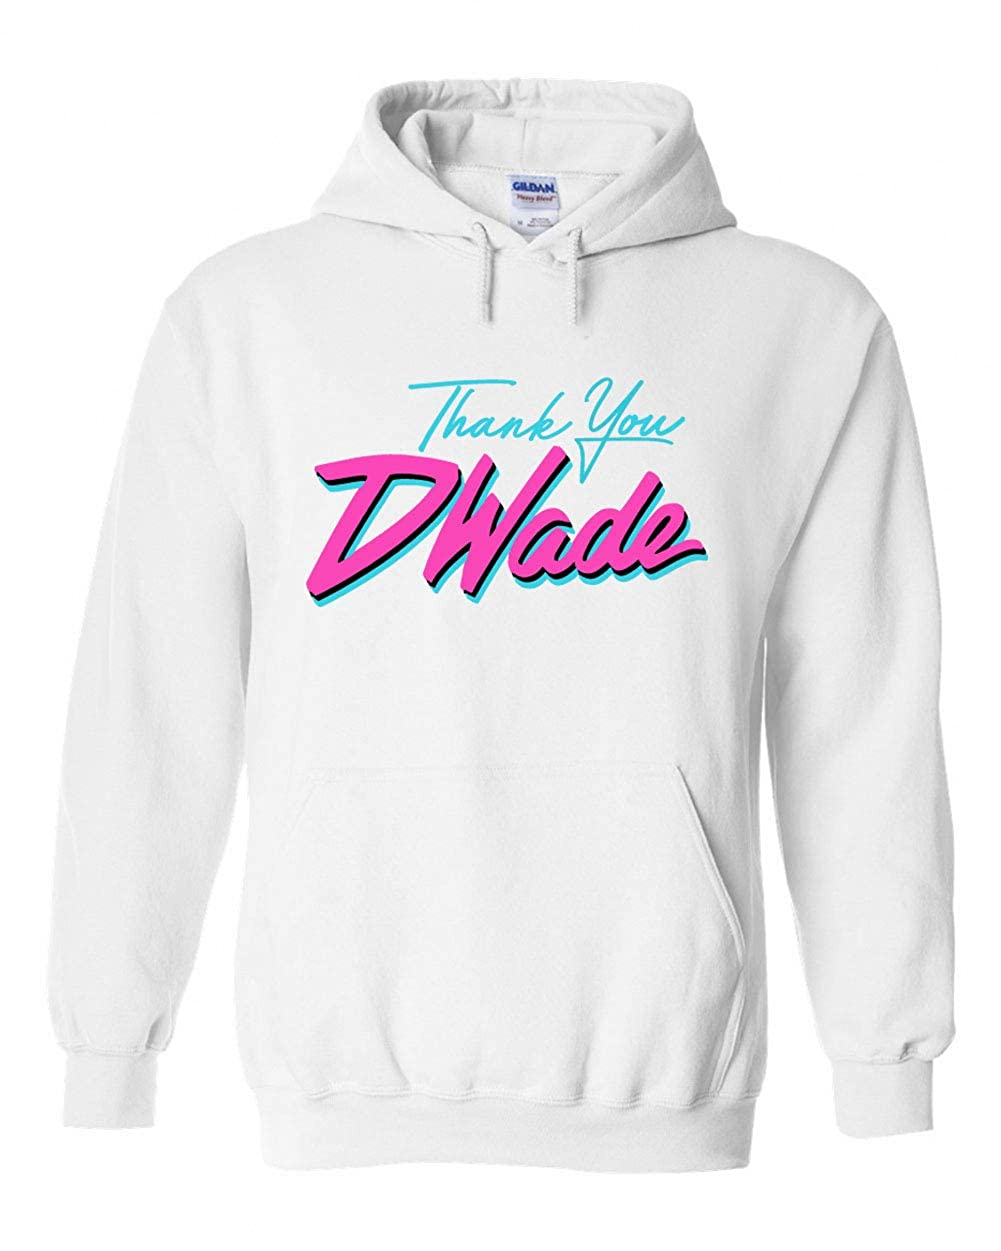 huge discount d445e 3615f PROSPECT SHIRTS White Miami D Wade Thank You Hooded Sweatshirt